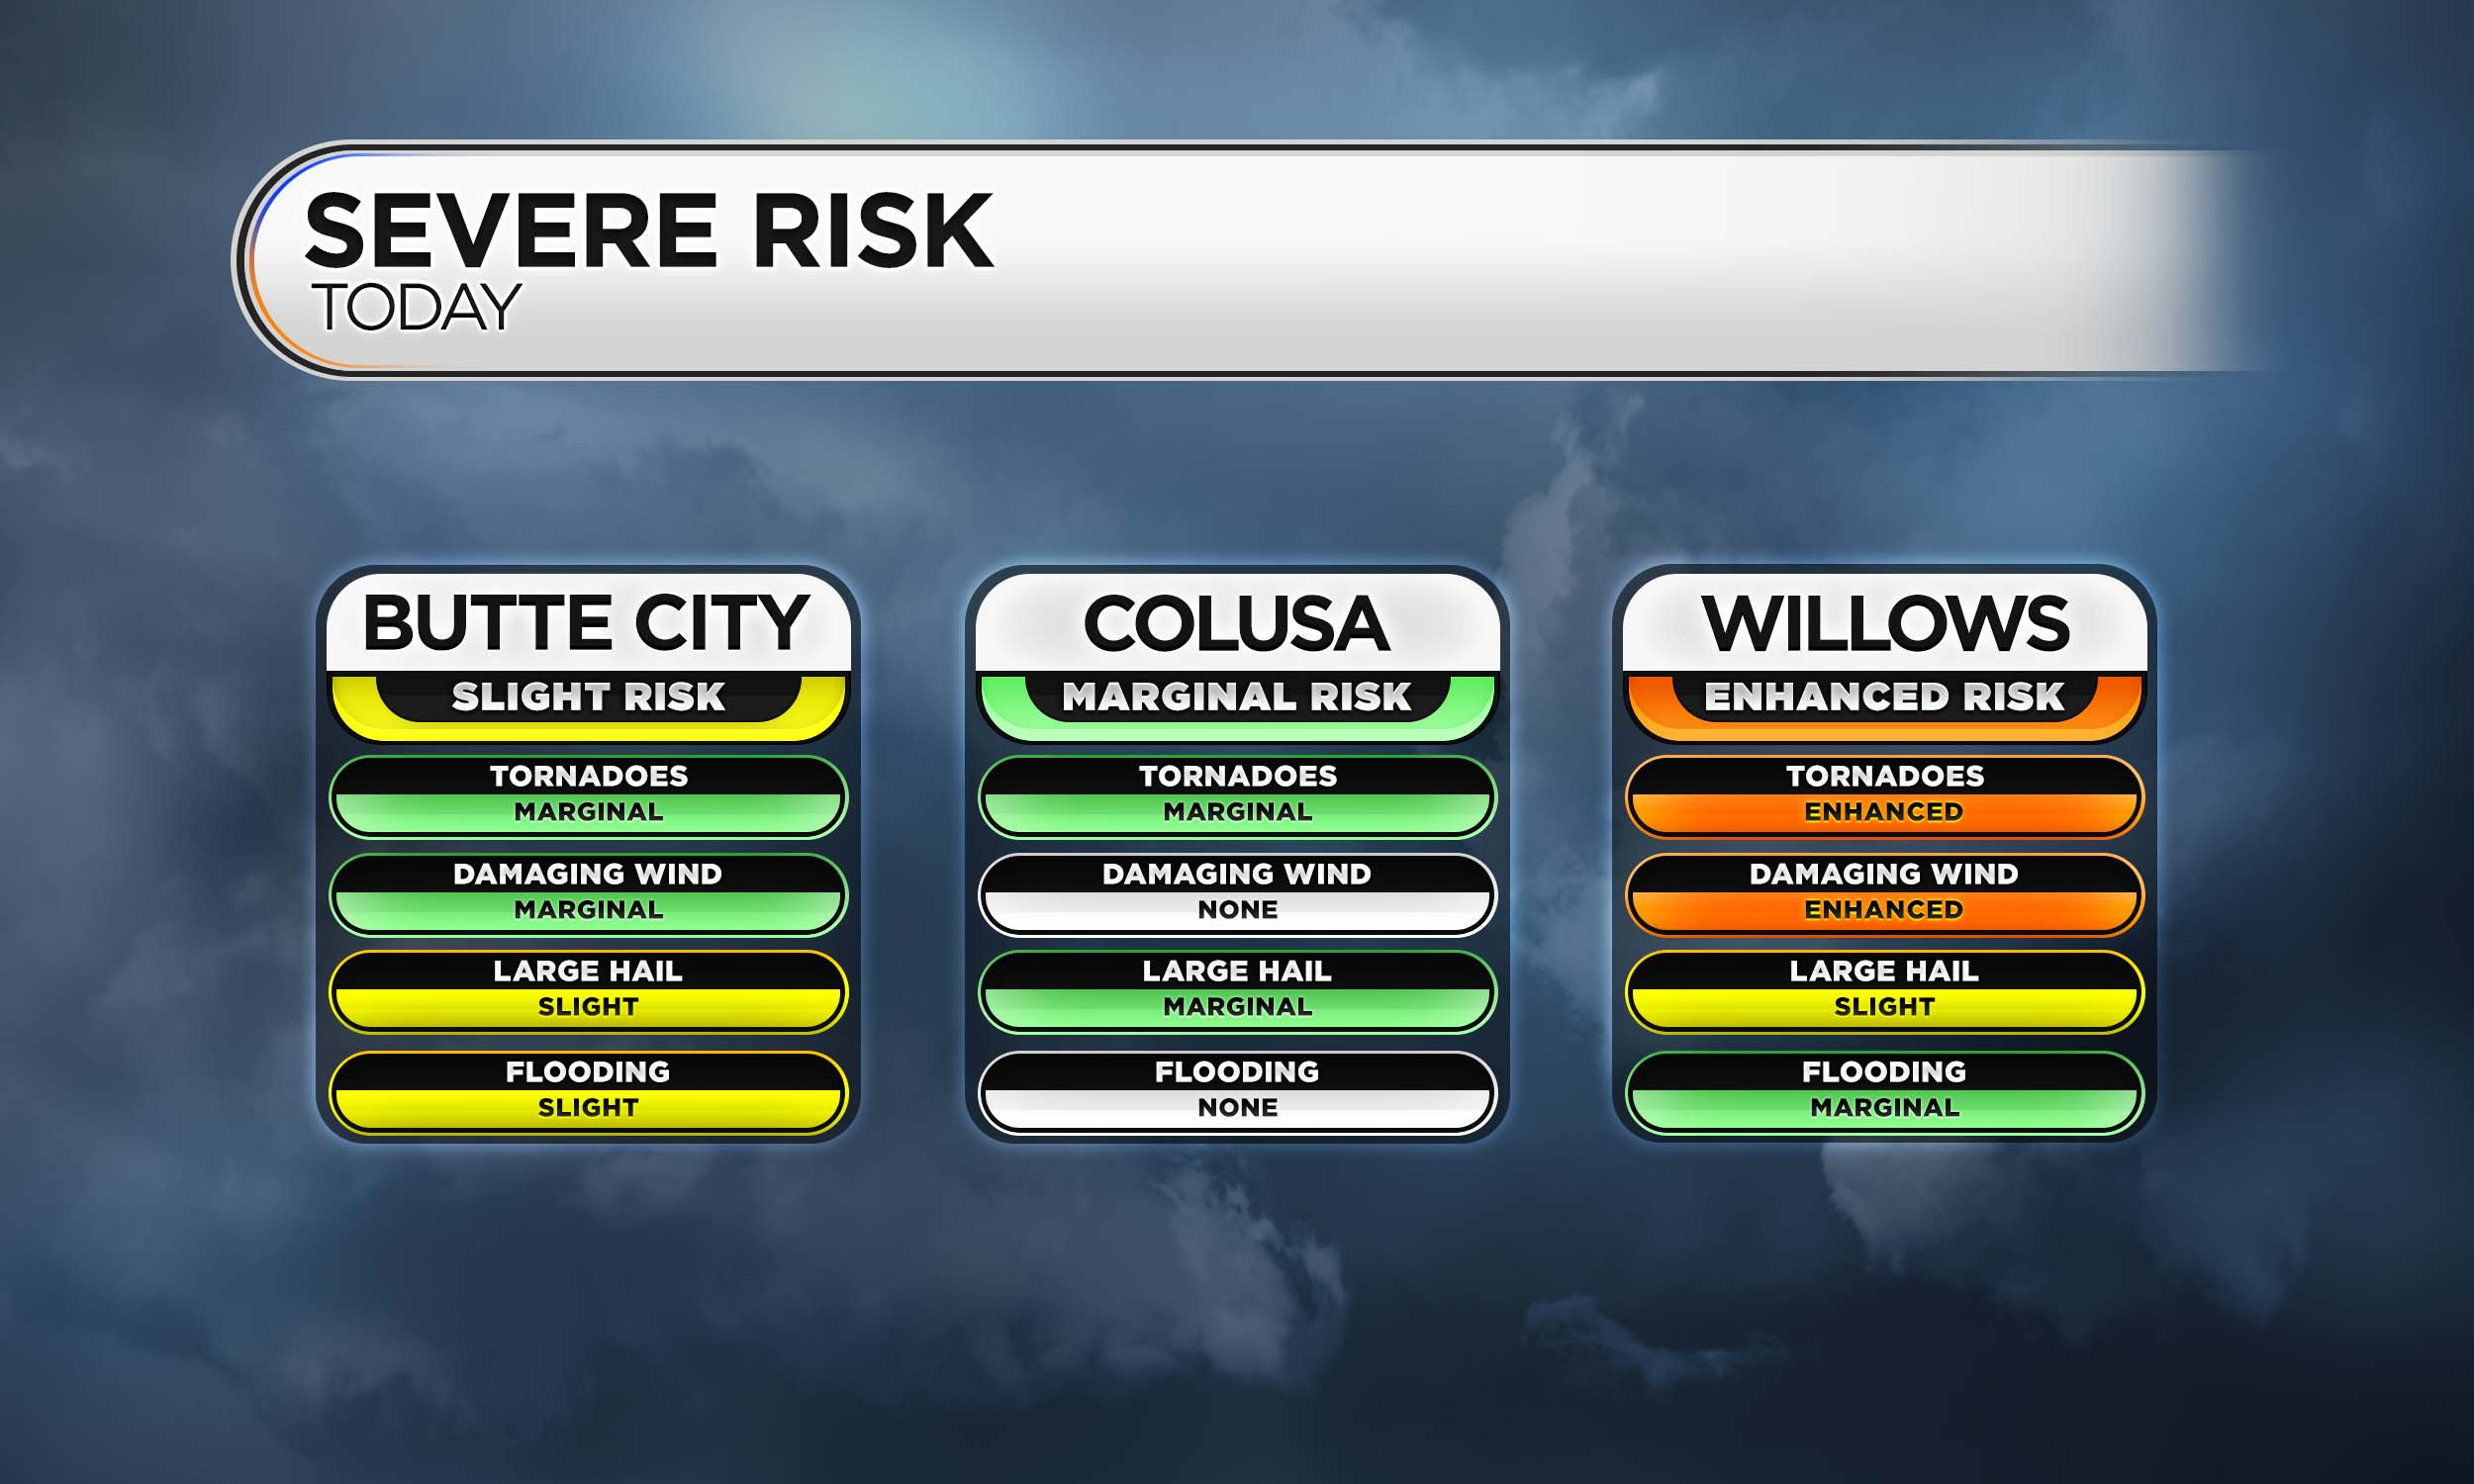 Severe Risk by Location Example I